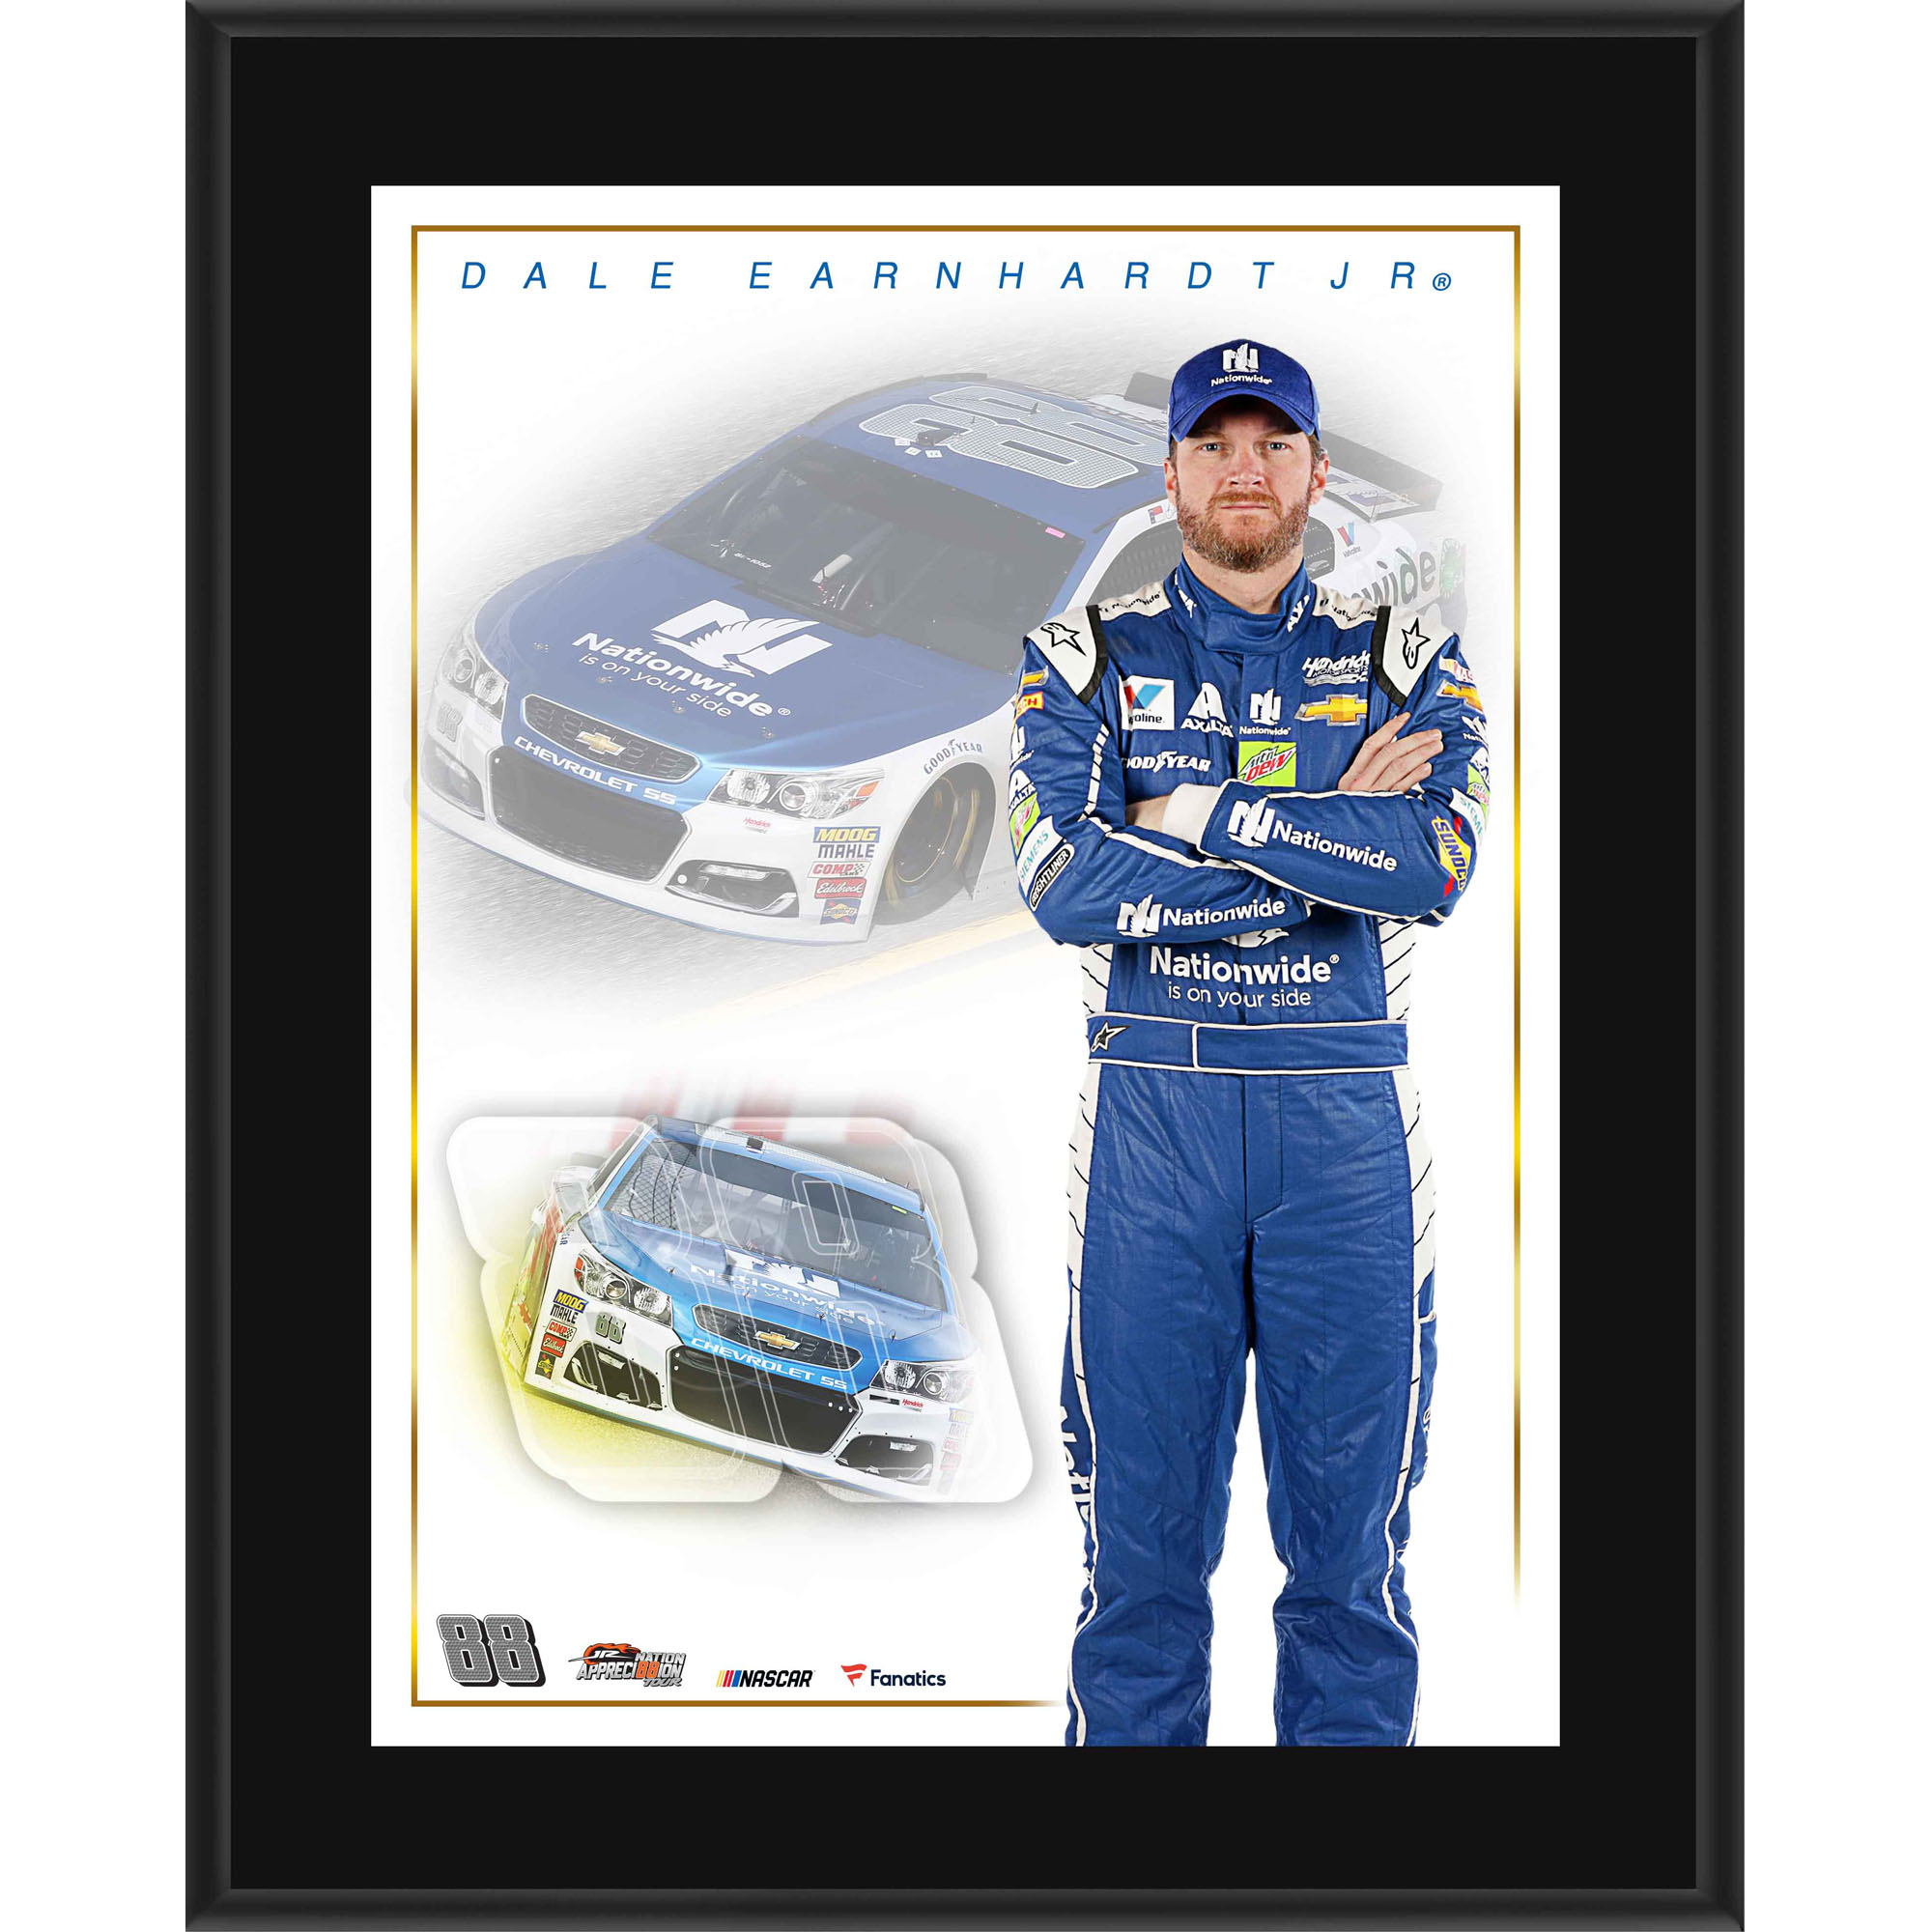 "Dale Earnhardt Jr. Fanatics Authentic 10.5"" x 13"" Nationwide Sublimated Plaque - No Size"